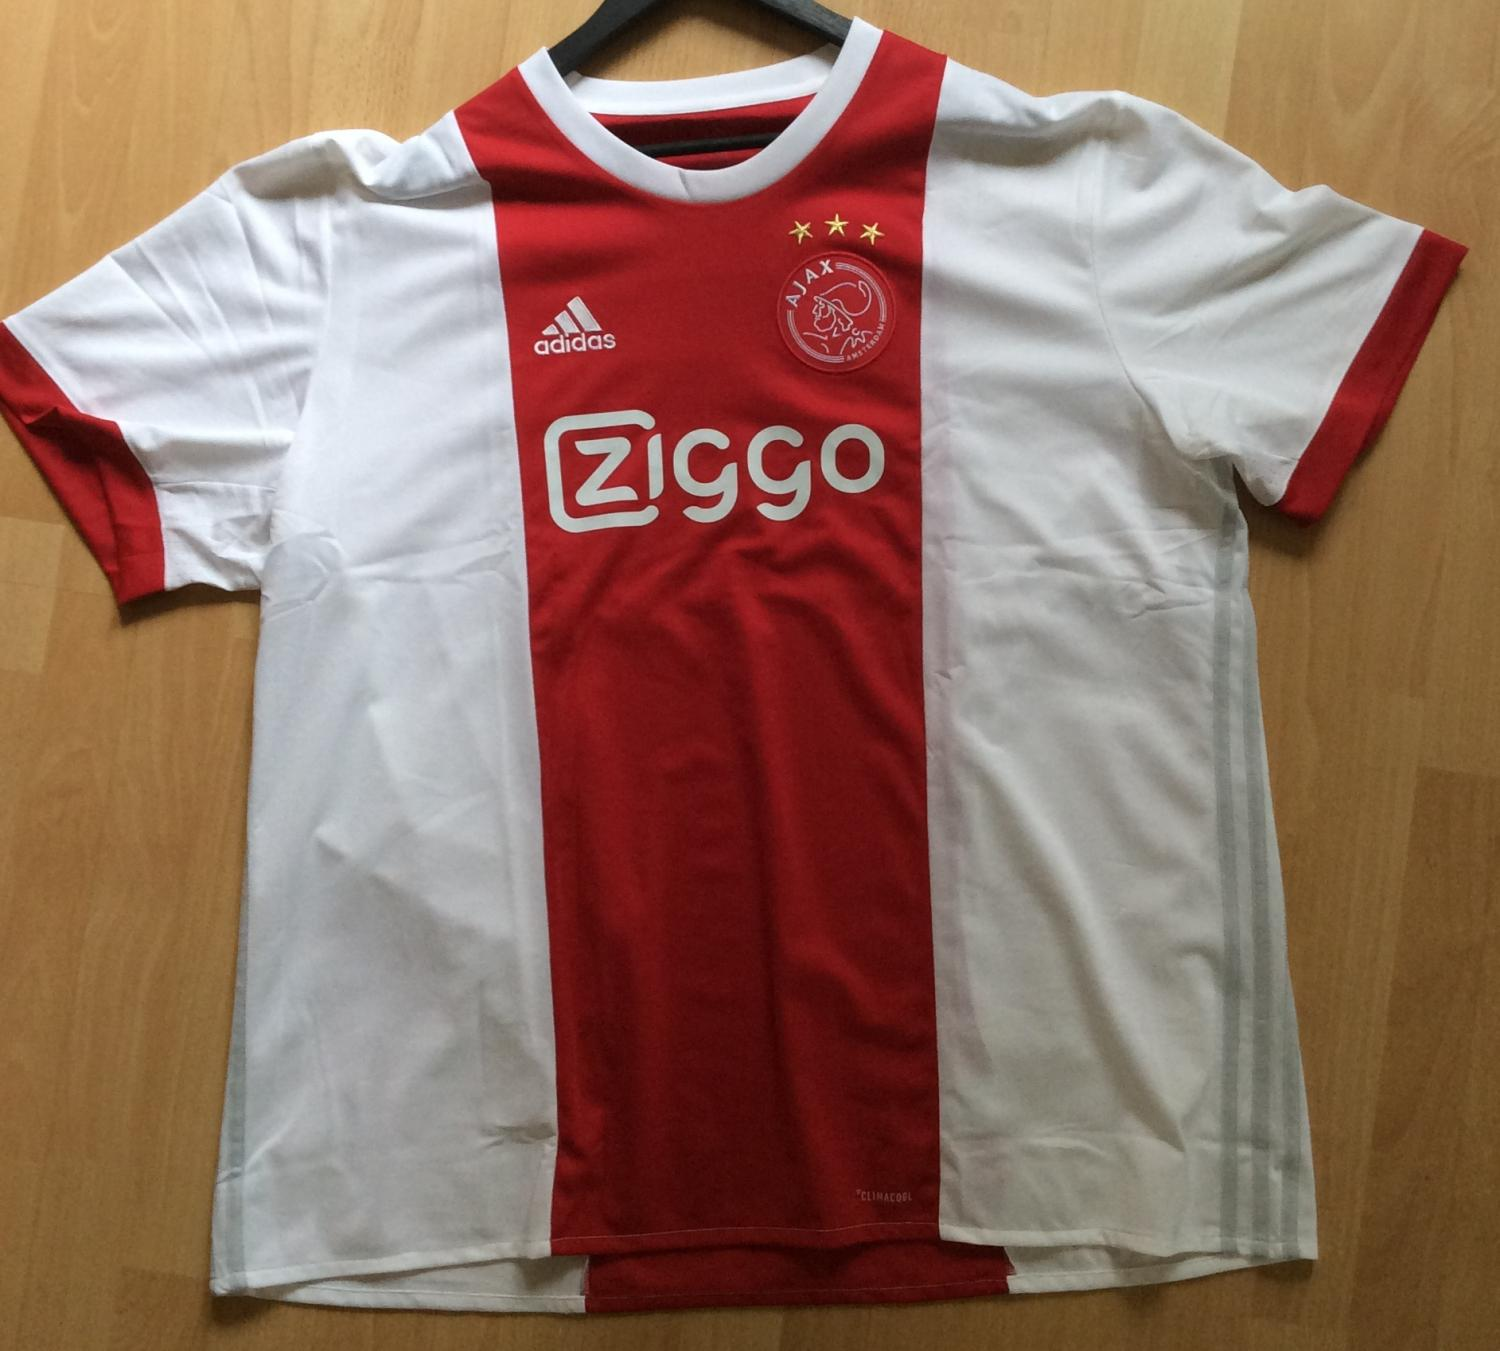 79aef6c4407 Ajax Home Maillot de foot 2017 - 2018. Sponsored by Ziggo